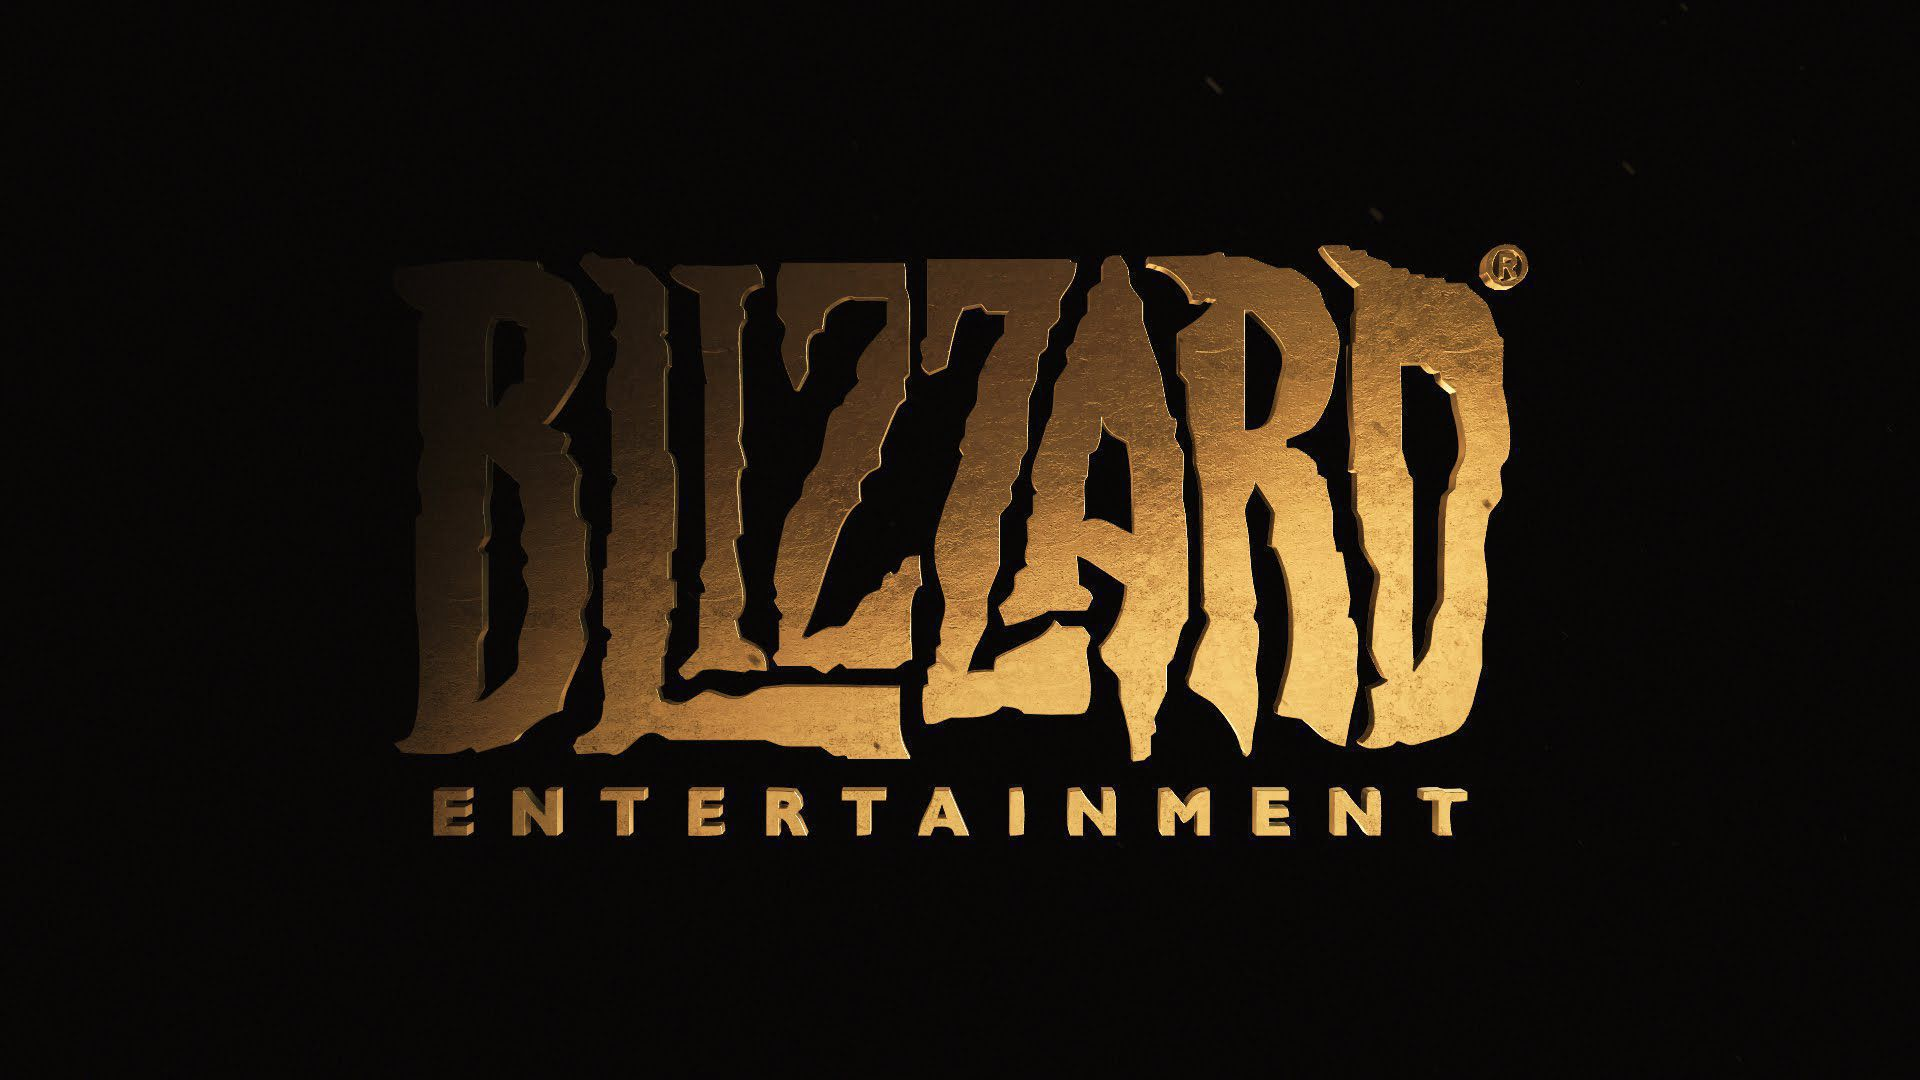 Blizzard HD Desktop